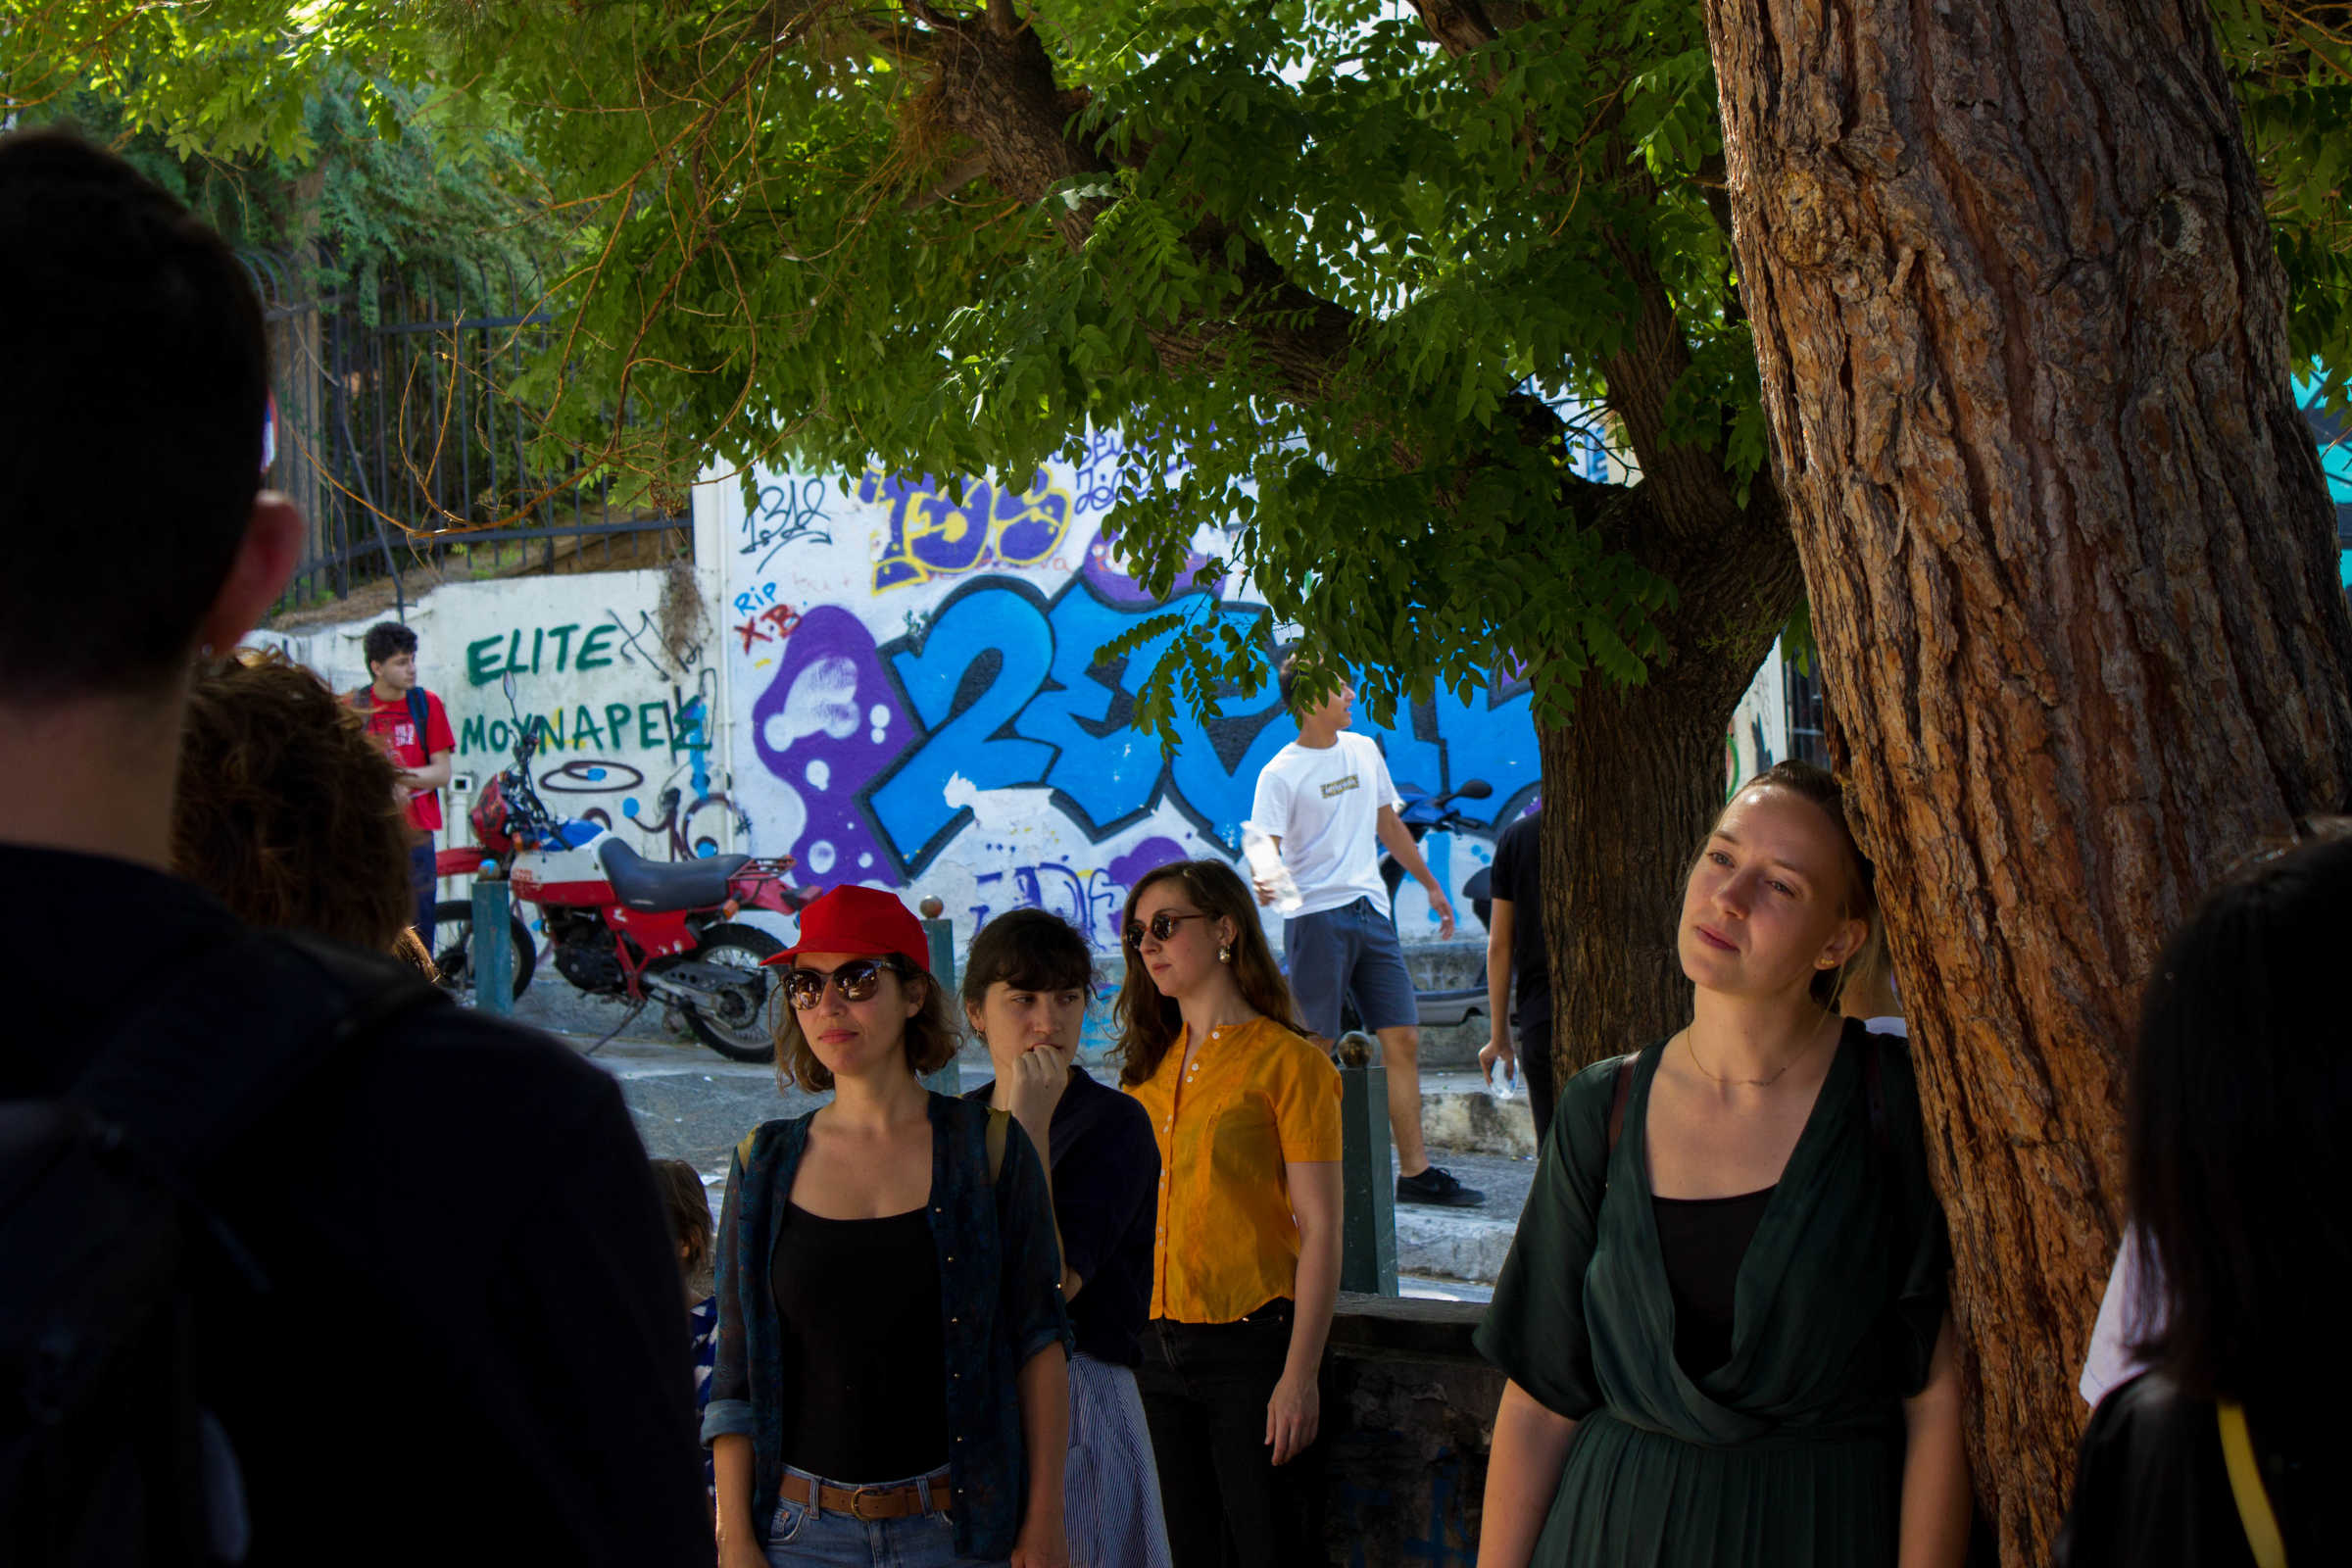 COOP SUMMIT 2018: Final presentation of the Curating Positions study group, COOP Summit 2018: A curated walk up and down hilly Neapoli (Athens), filled with different performances in communal gardens, residential houses and narrow pathways. June 2018, Athens. Photo by Silvia Ulloa.